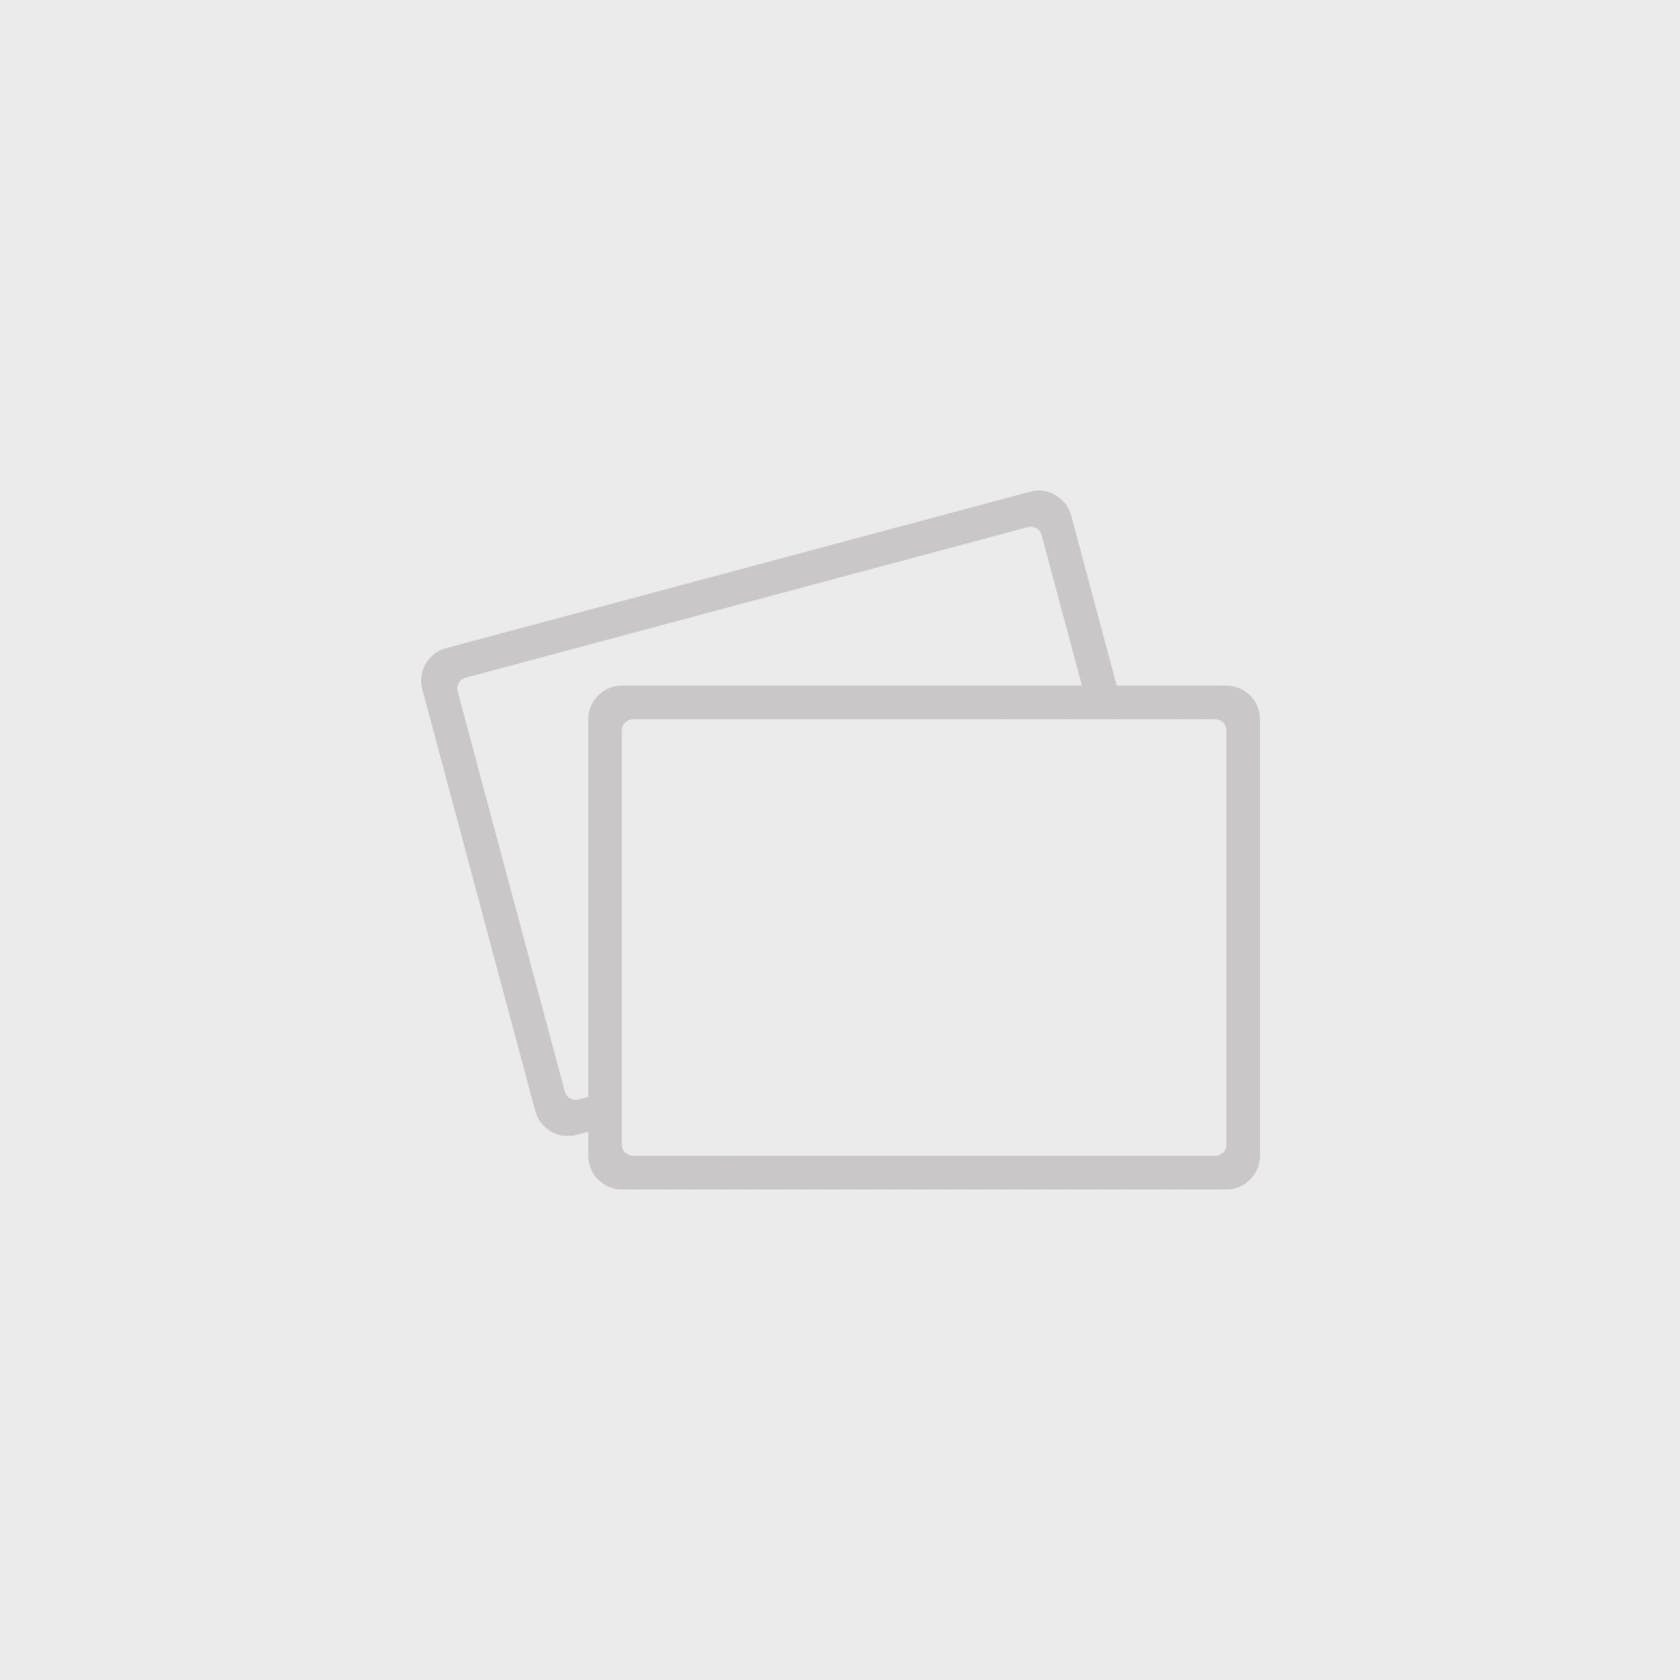 FLOORLIFE KENSINGTON LIGHT OAK (CLICK MET KURK) 5388182119 ( AMBIANT SARENZA LIGHT OAK )